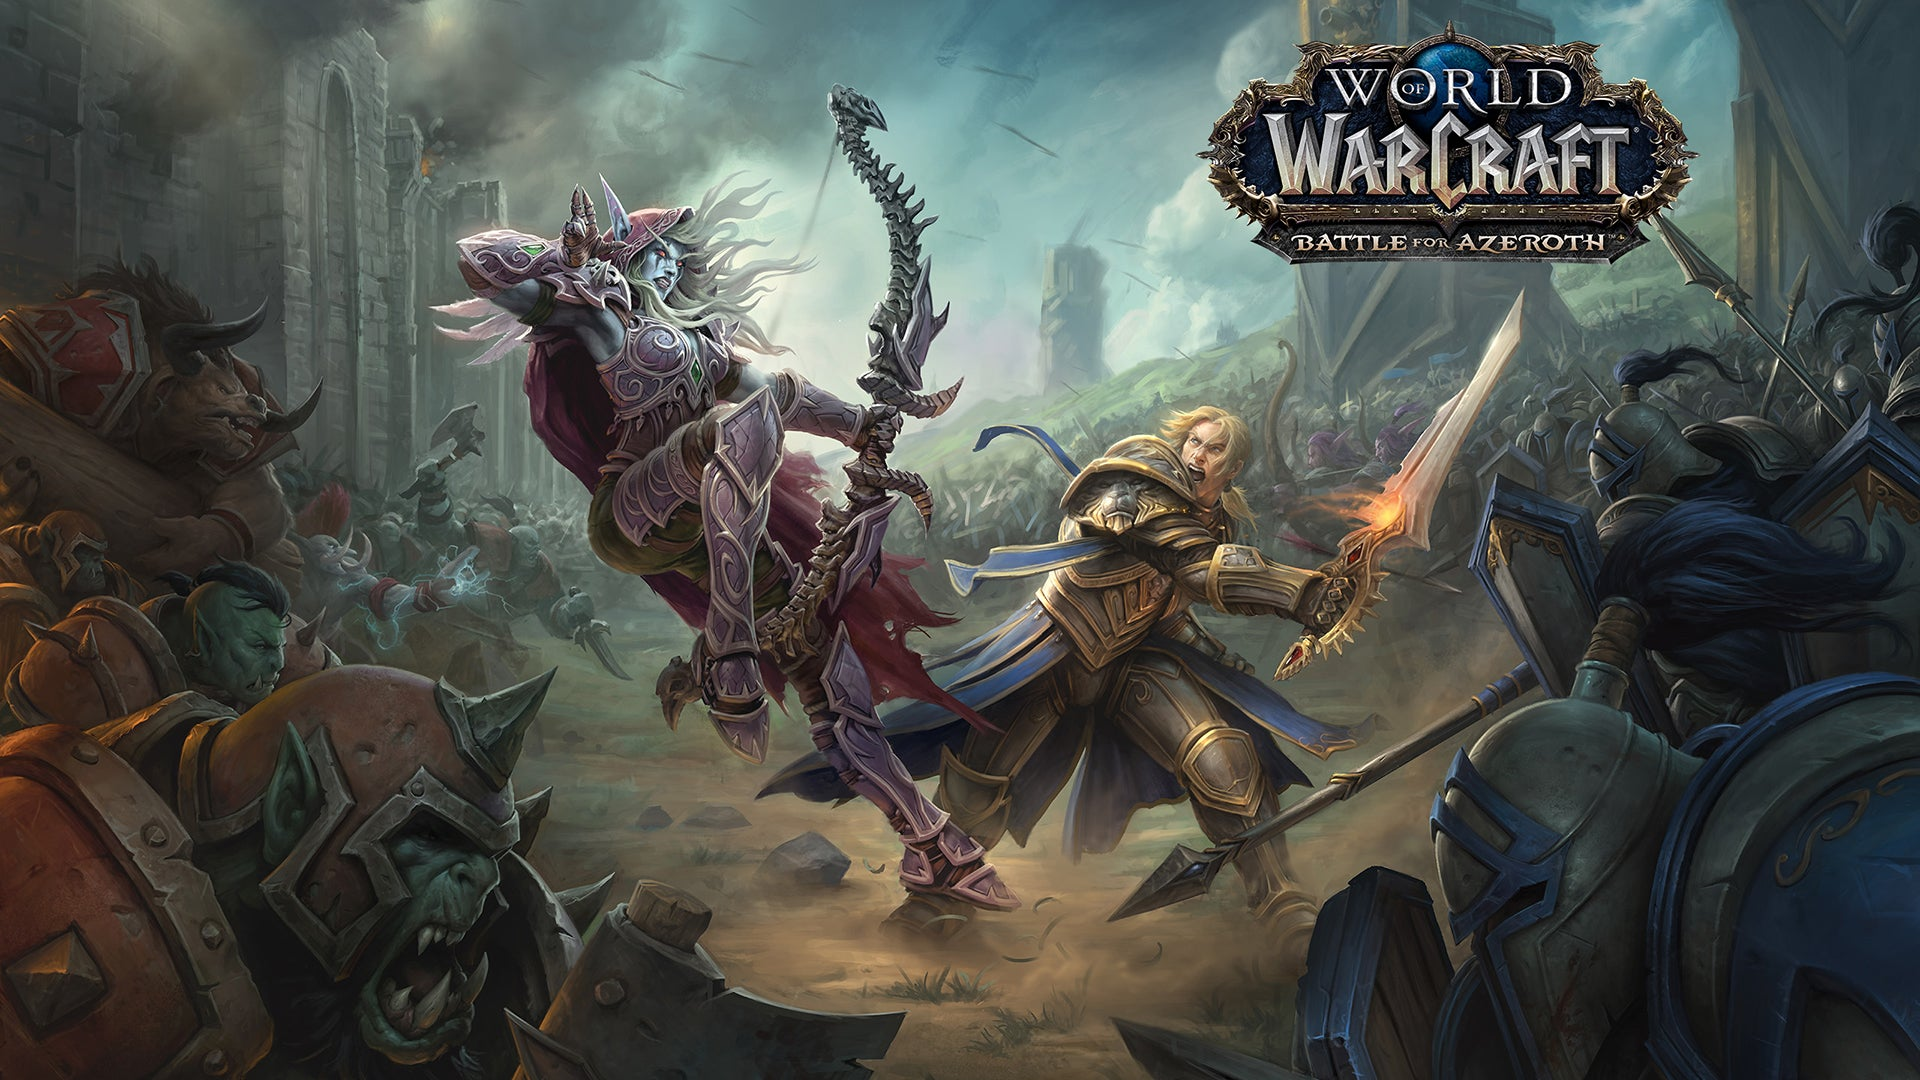 Battle for Azeroth Arrives In August